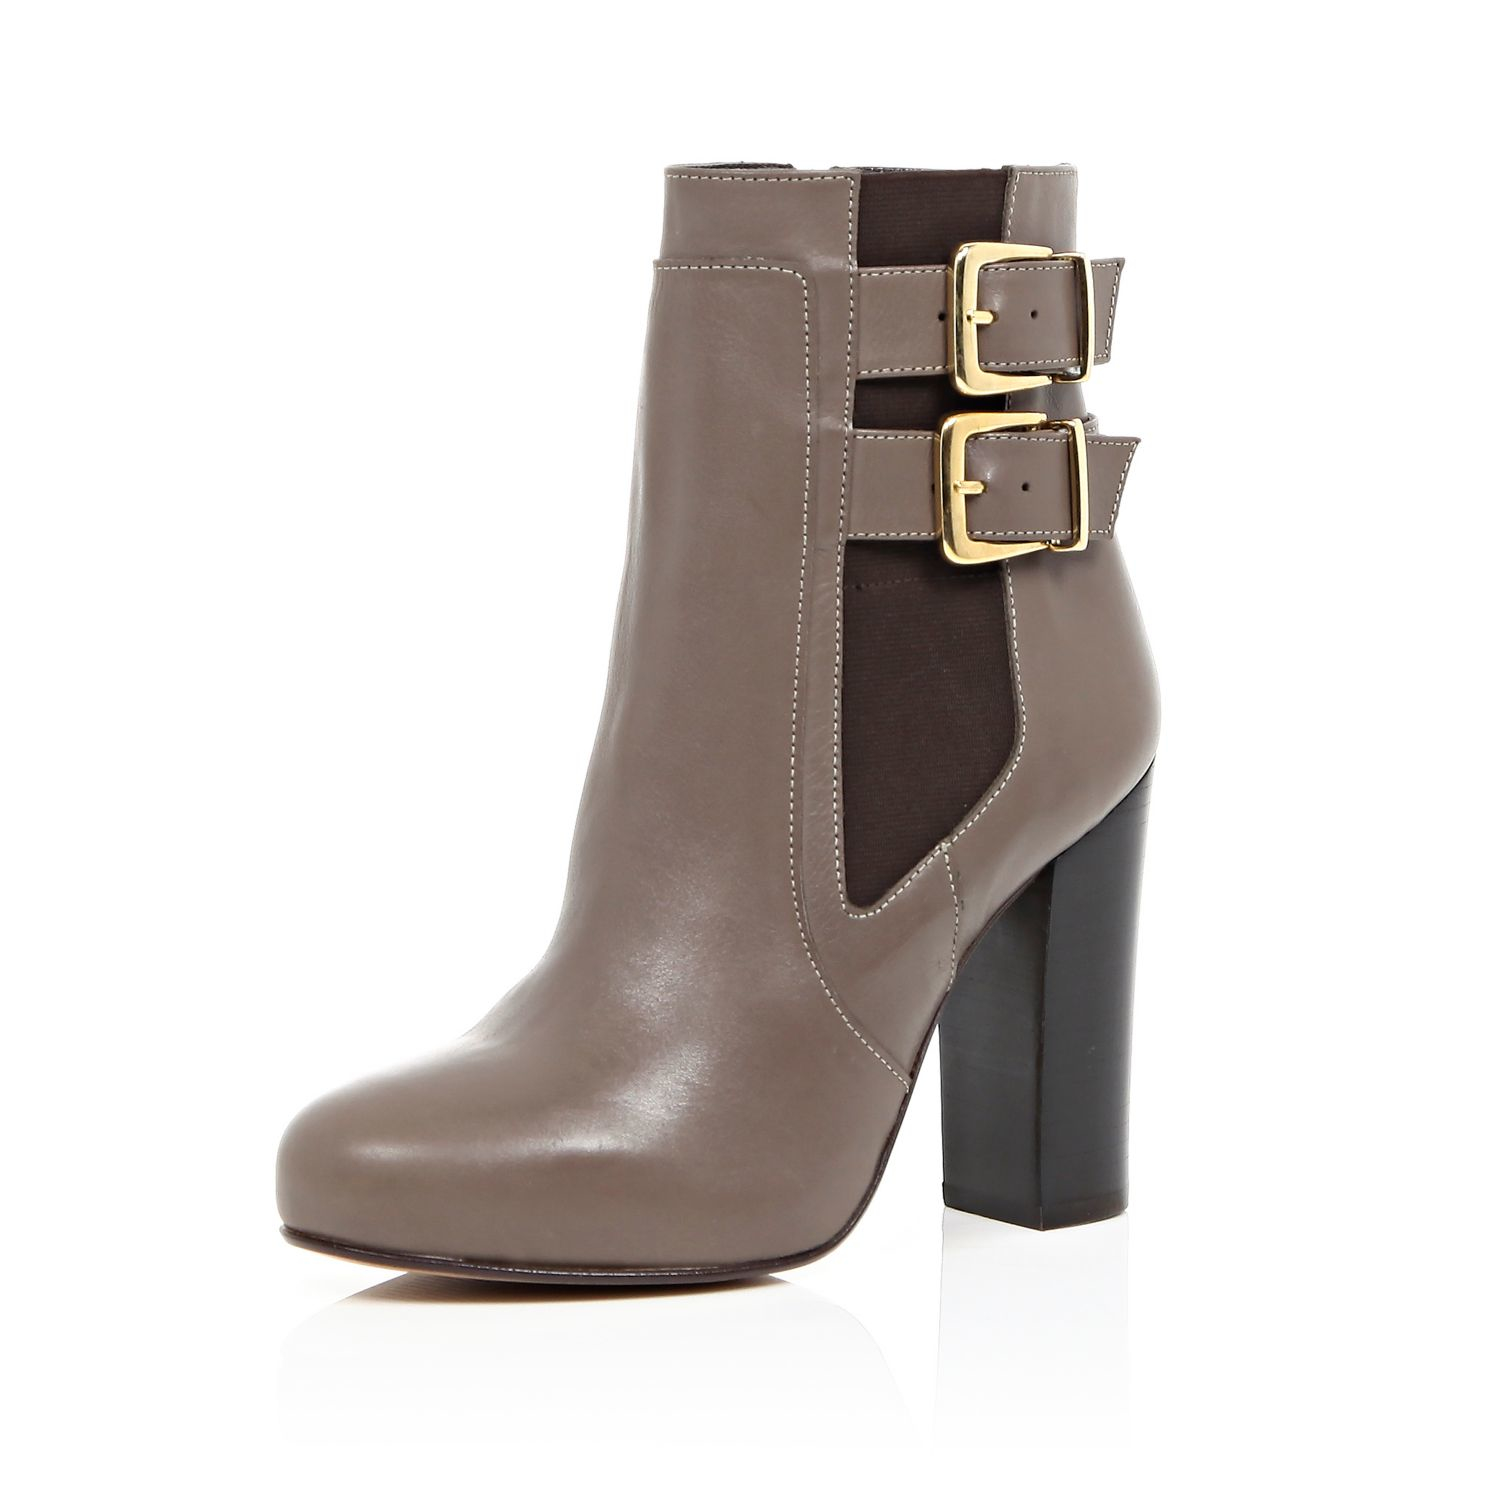 Step out in our hottest selection of ankle boots designed for tall women. At Long Tall Sally, we offer women's large size ankle boots in size 7 and up.